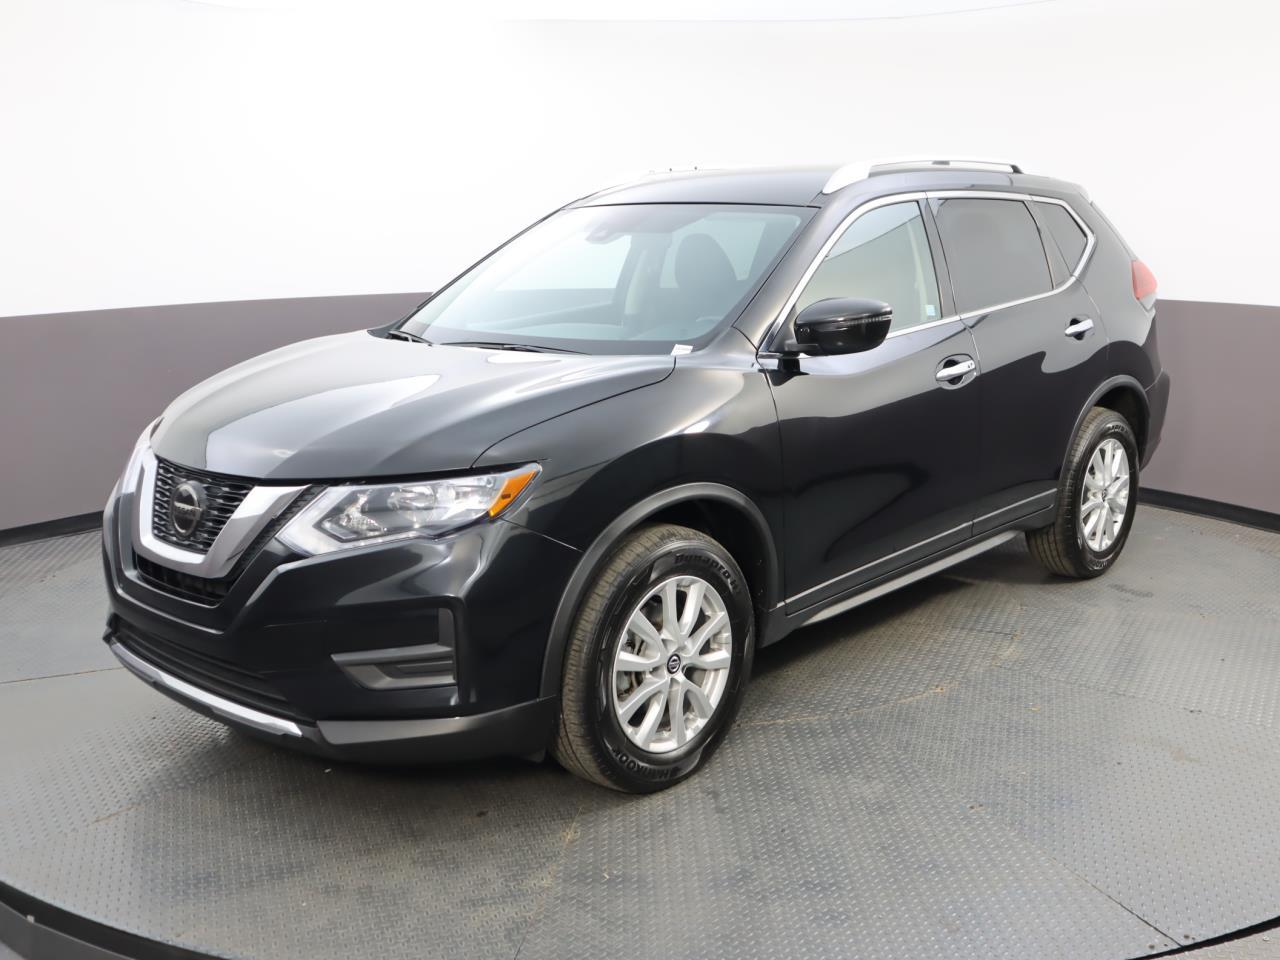 Used NISSAN ROGUE 2020 MIAMI SV